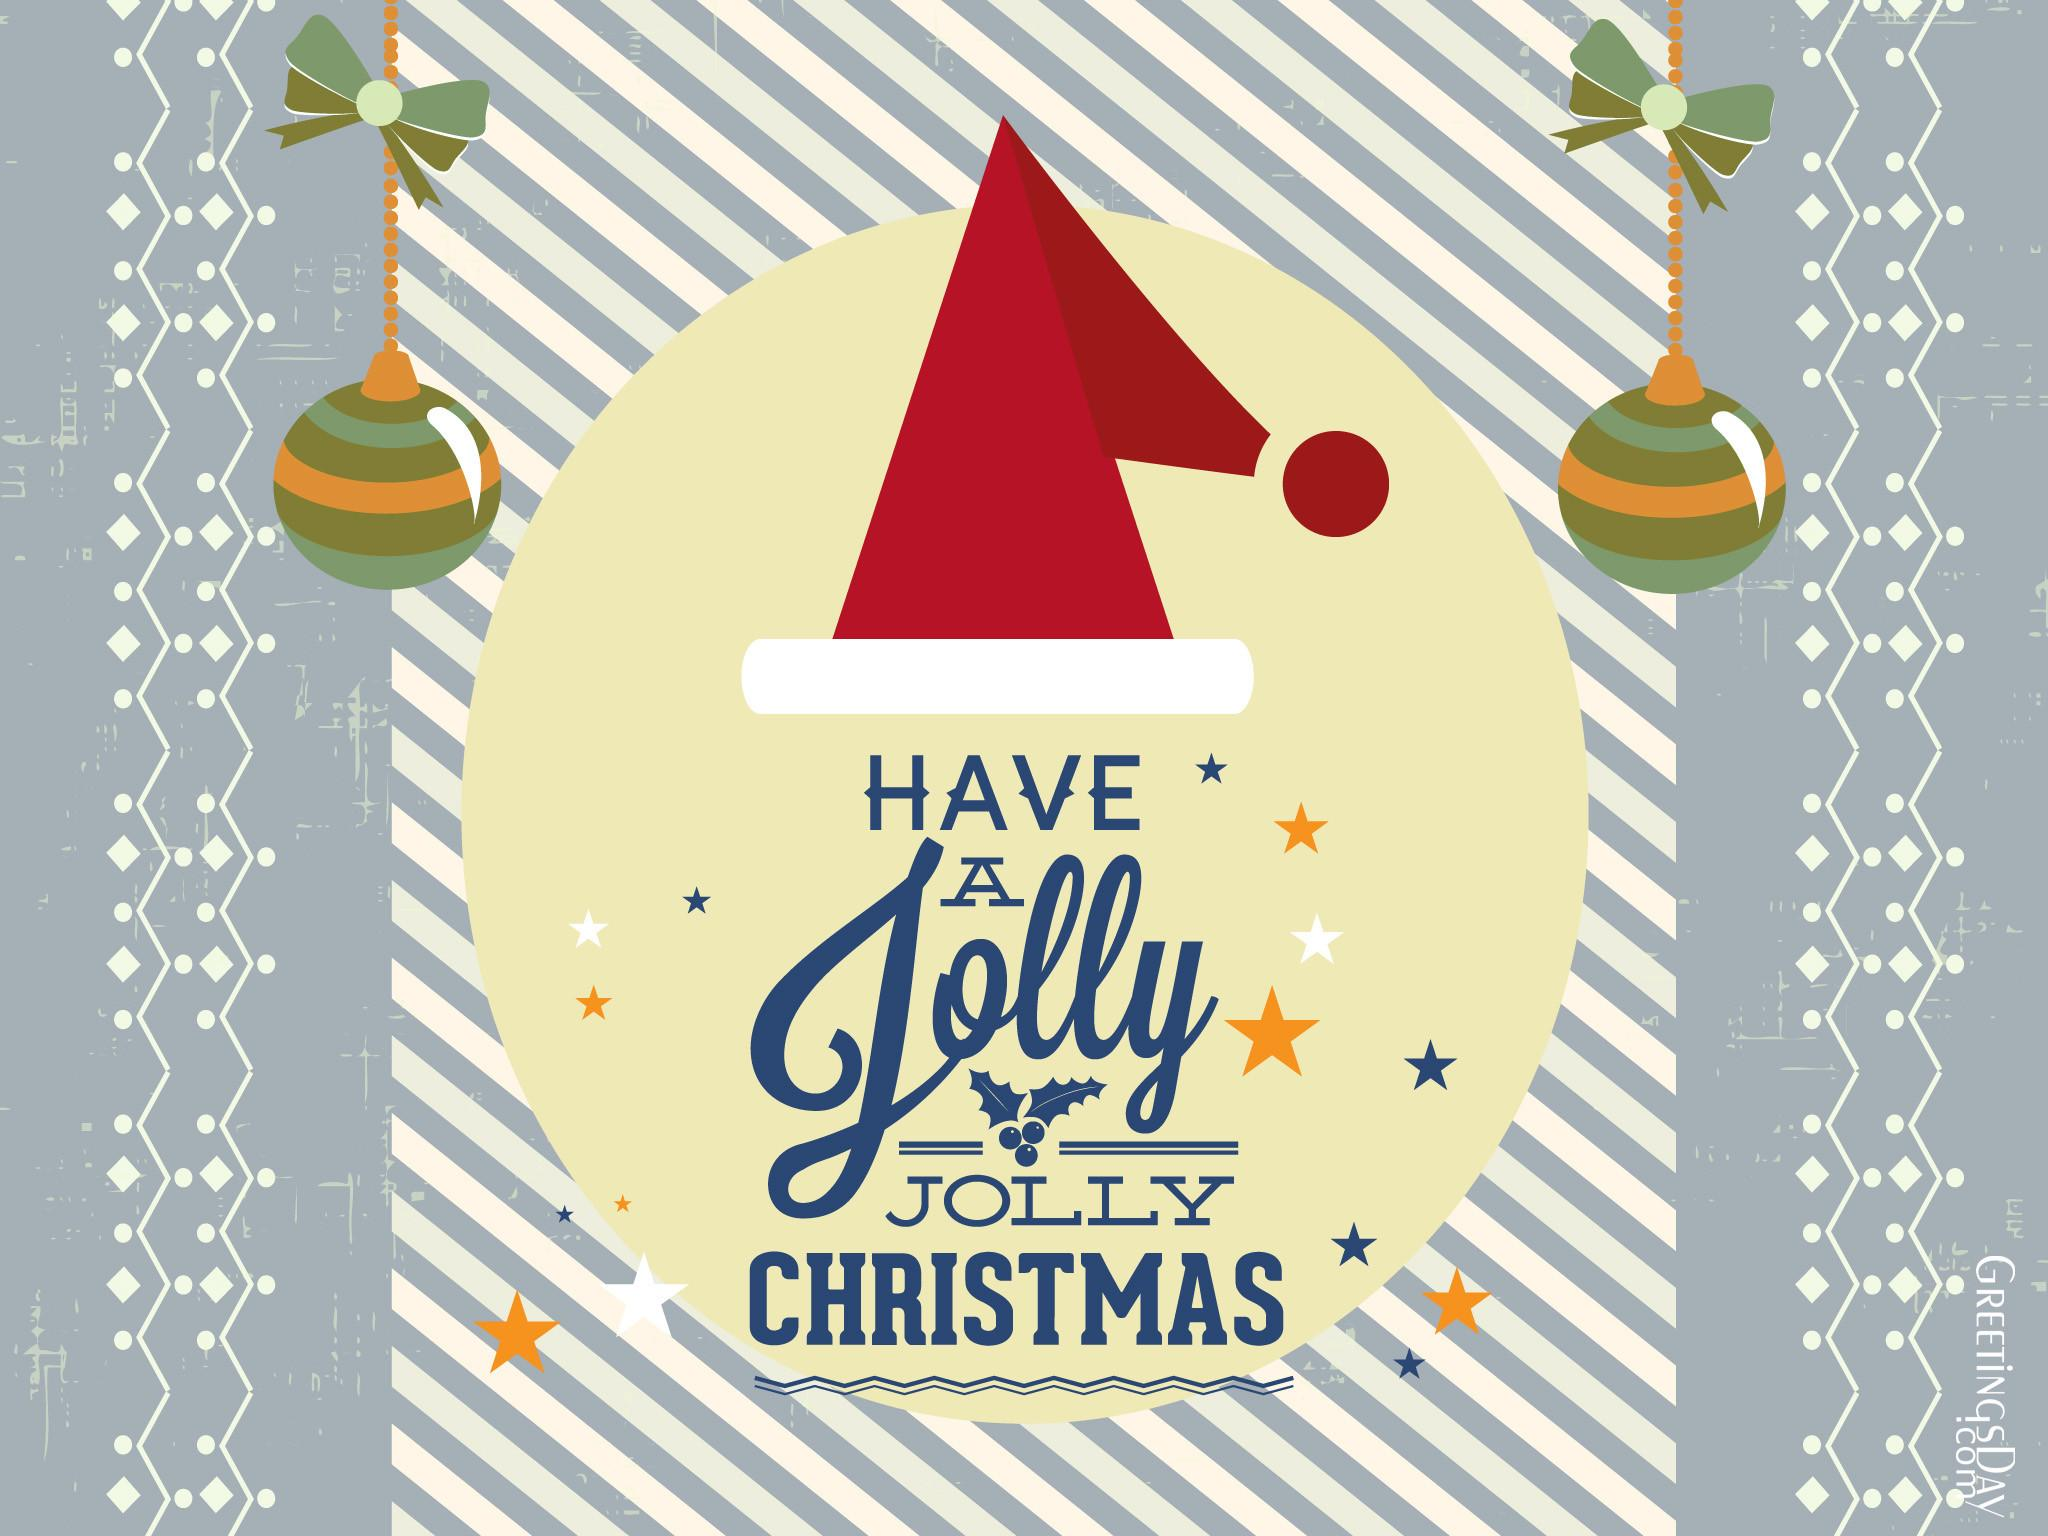 Christmas Greeting Cards Wishes Friends